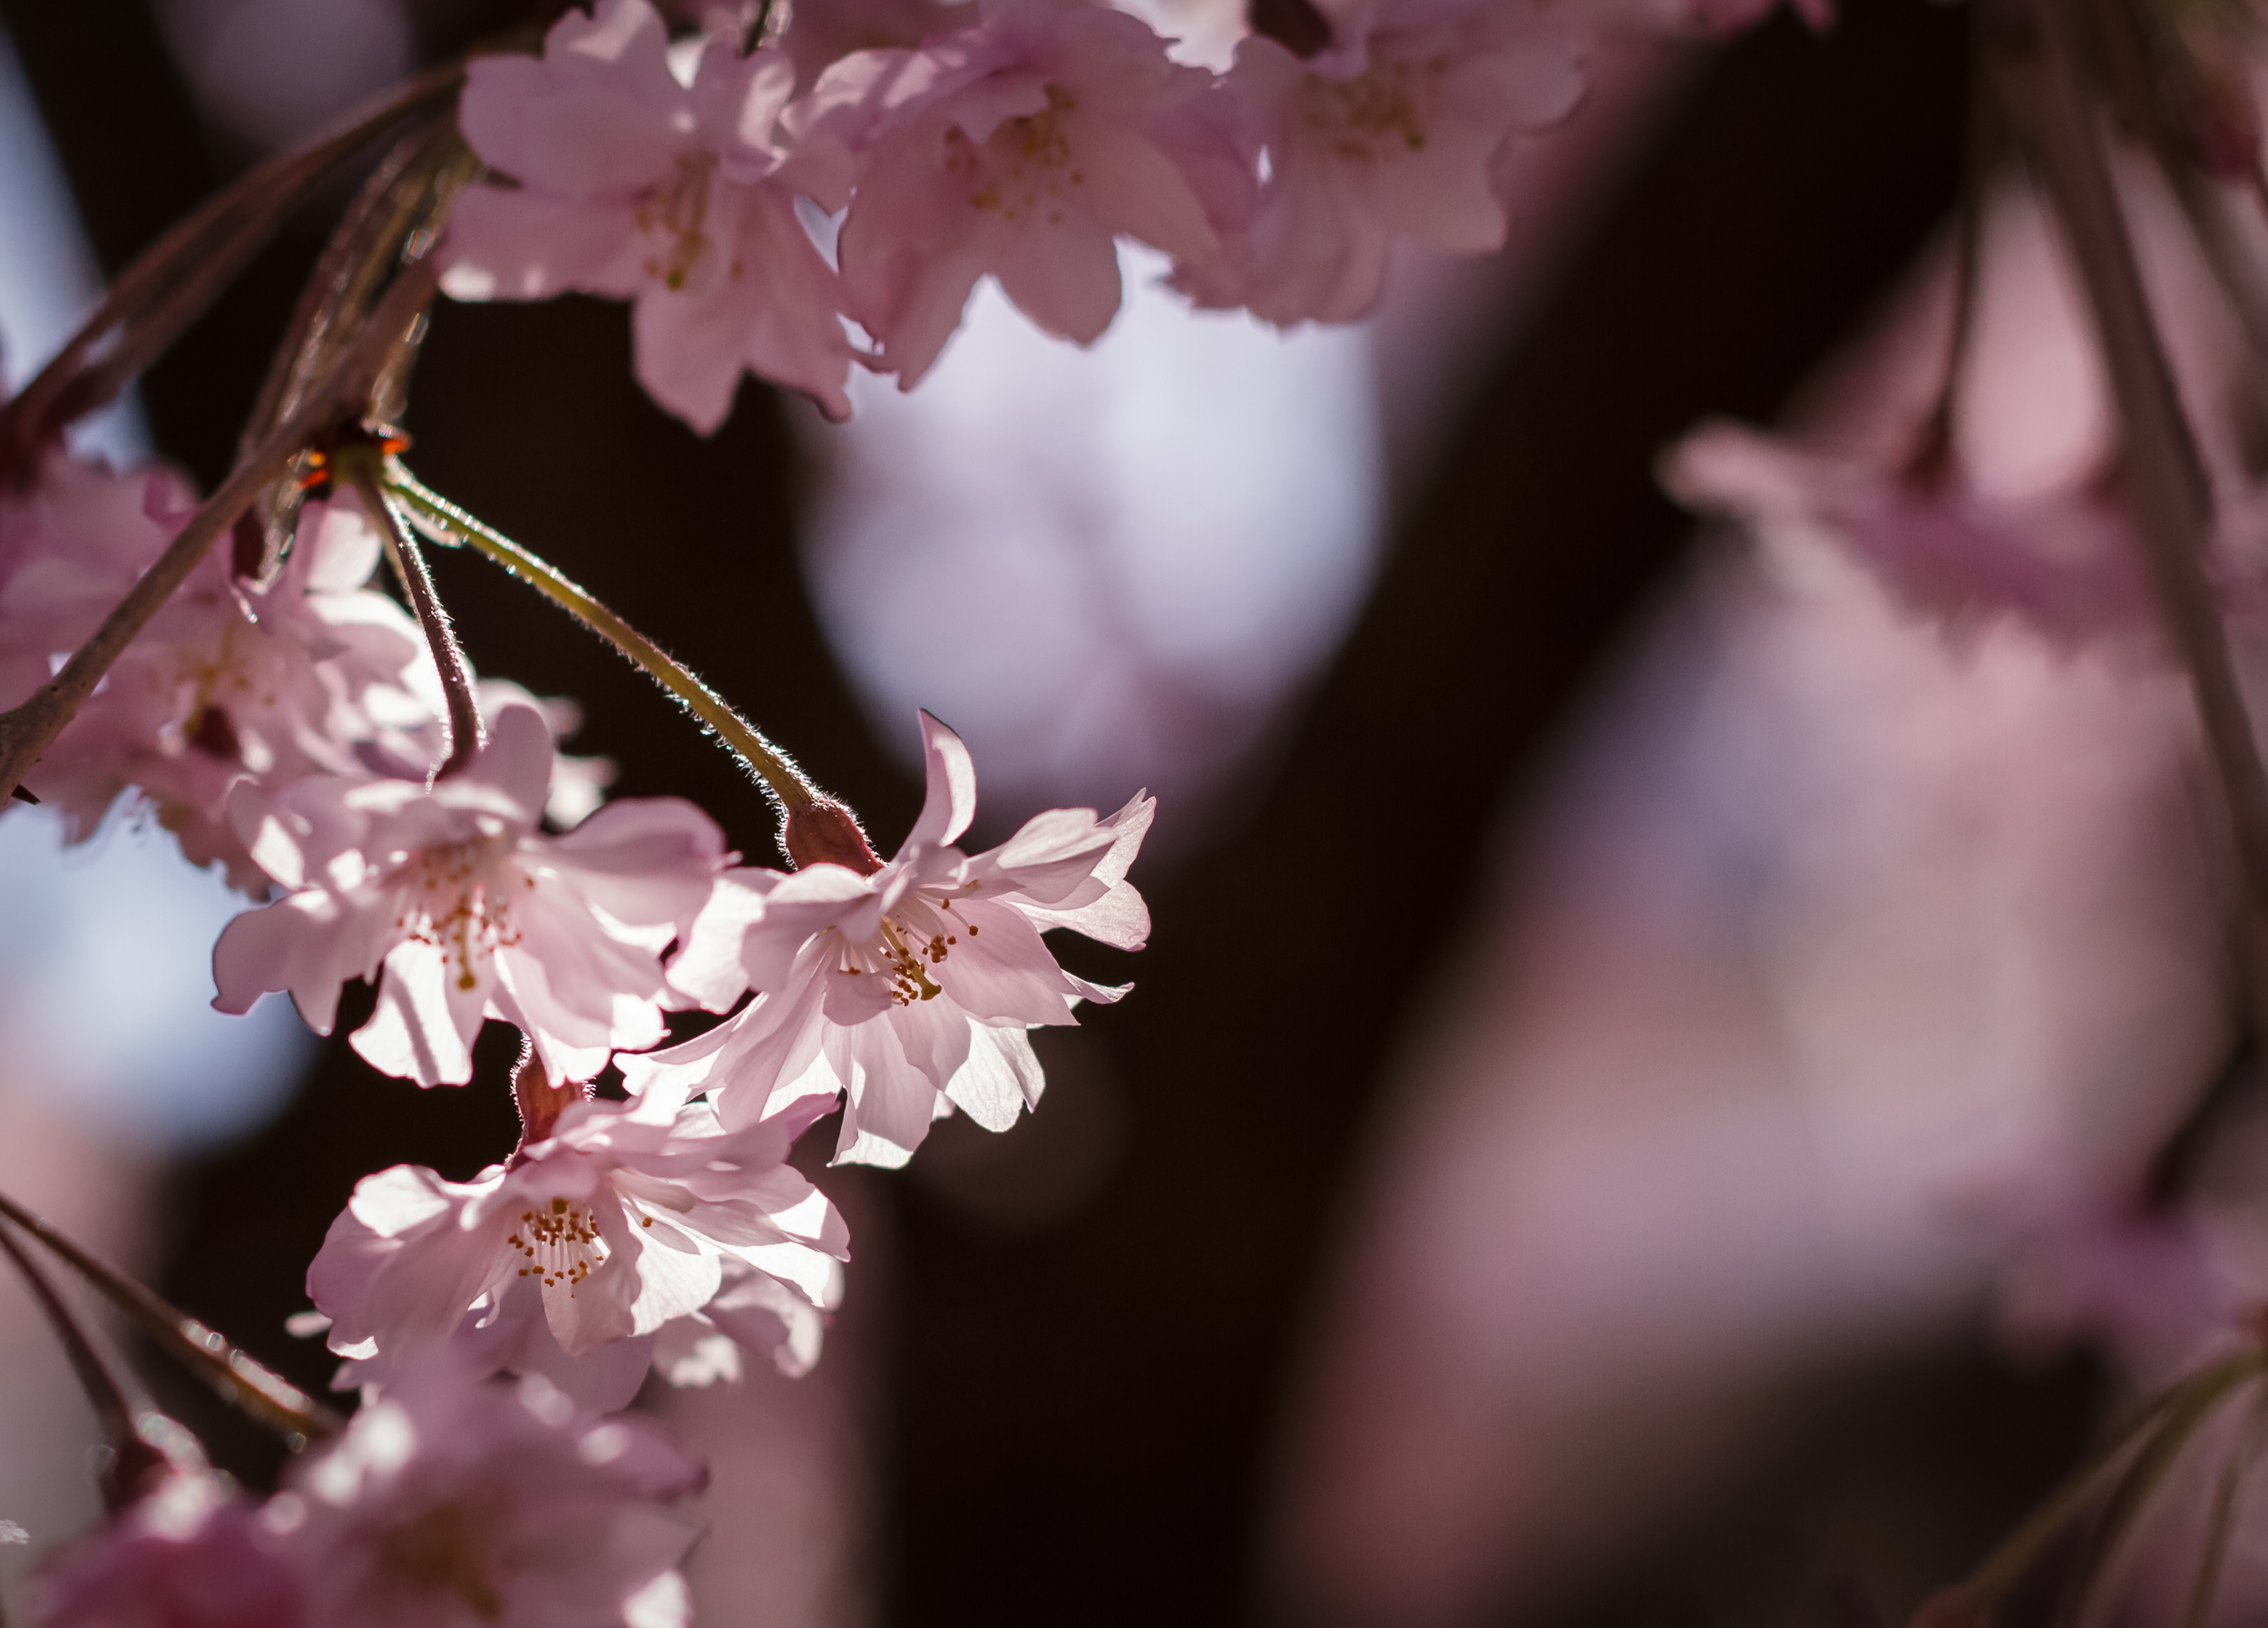 Afternoon light filtering through cherry blossoms